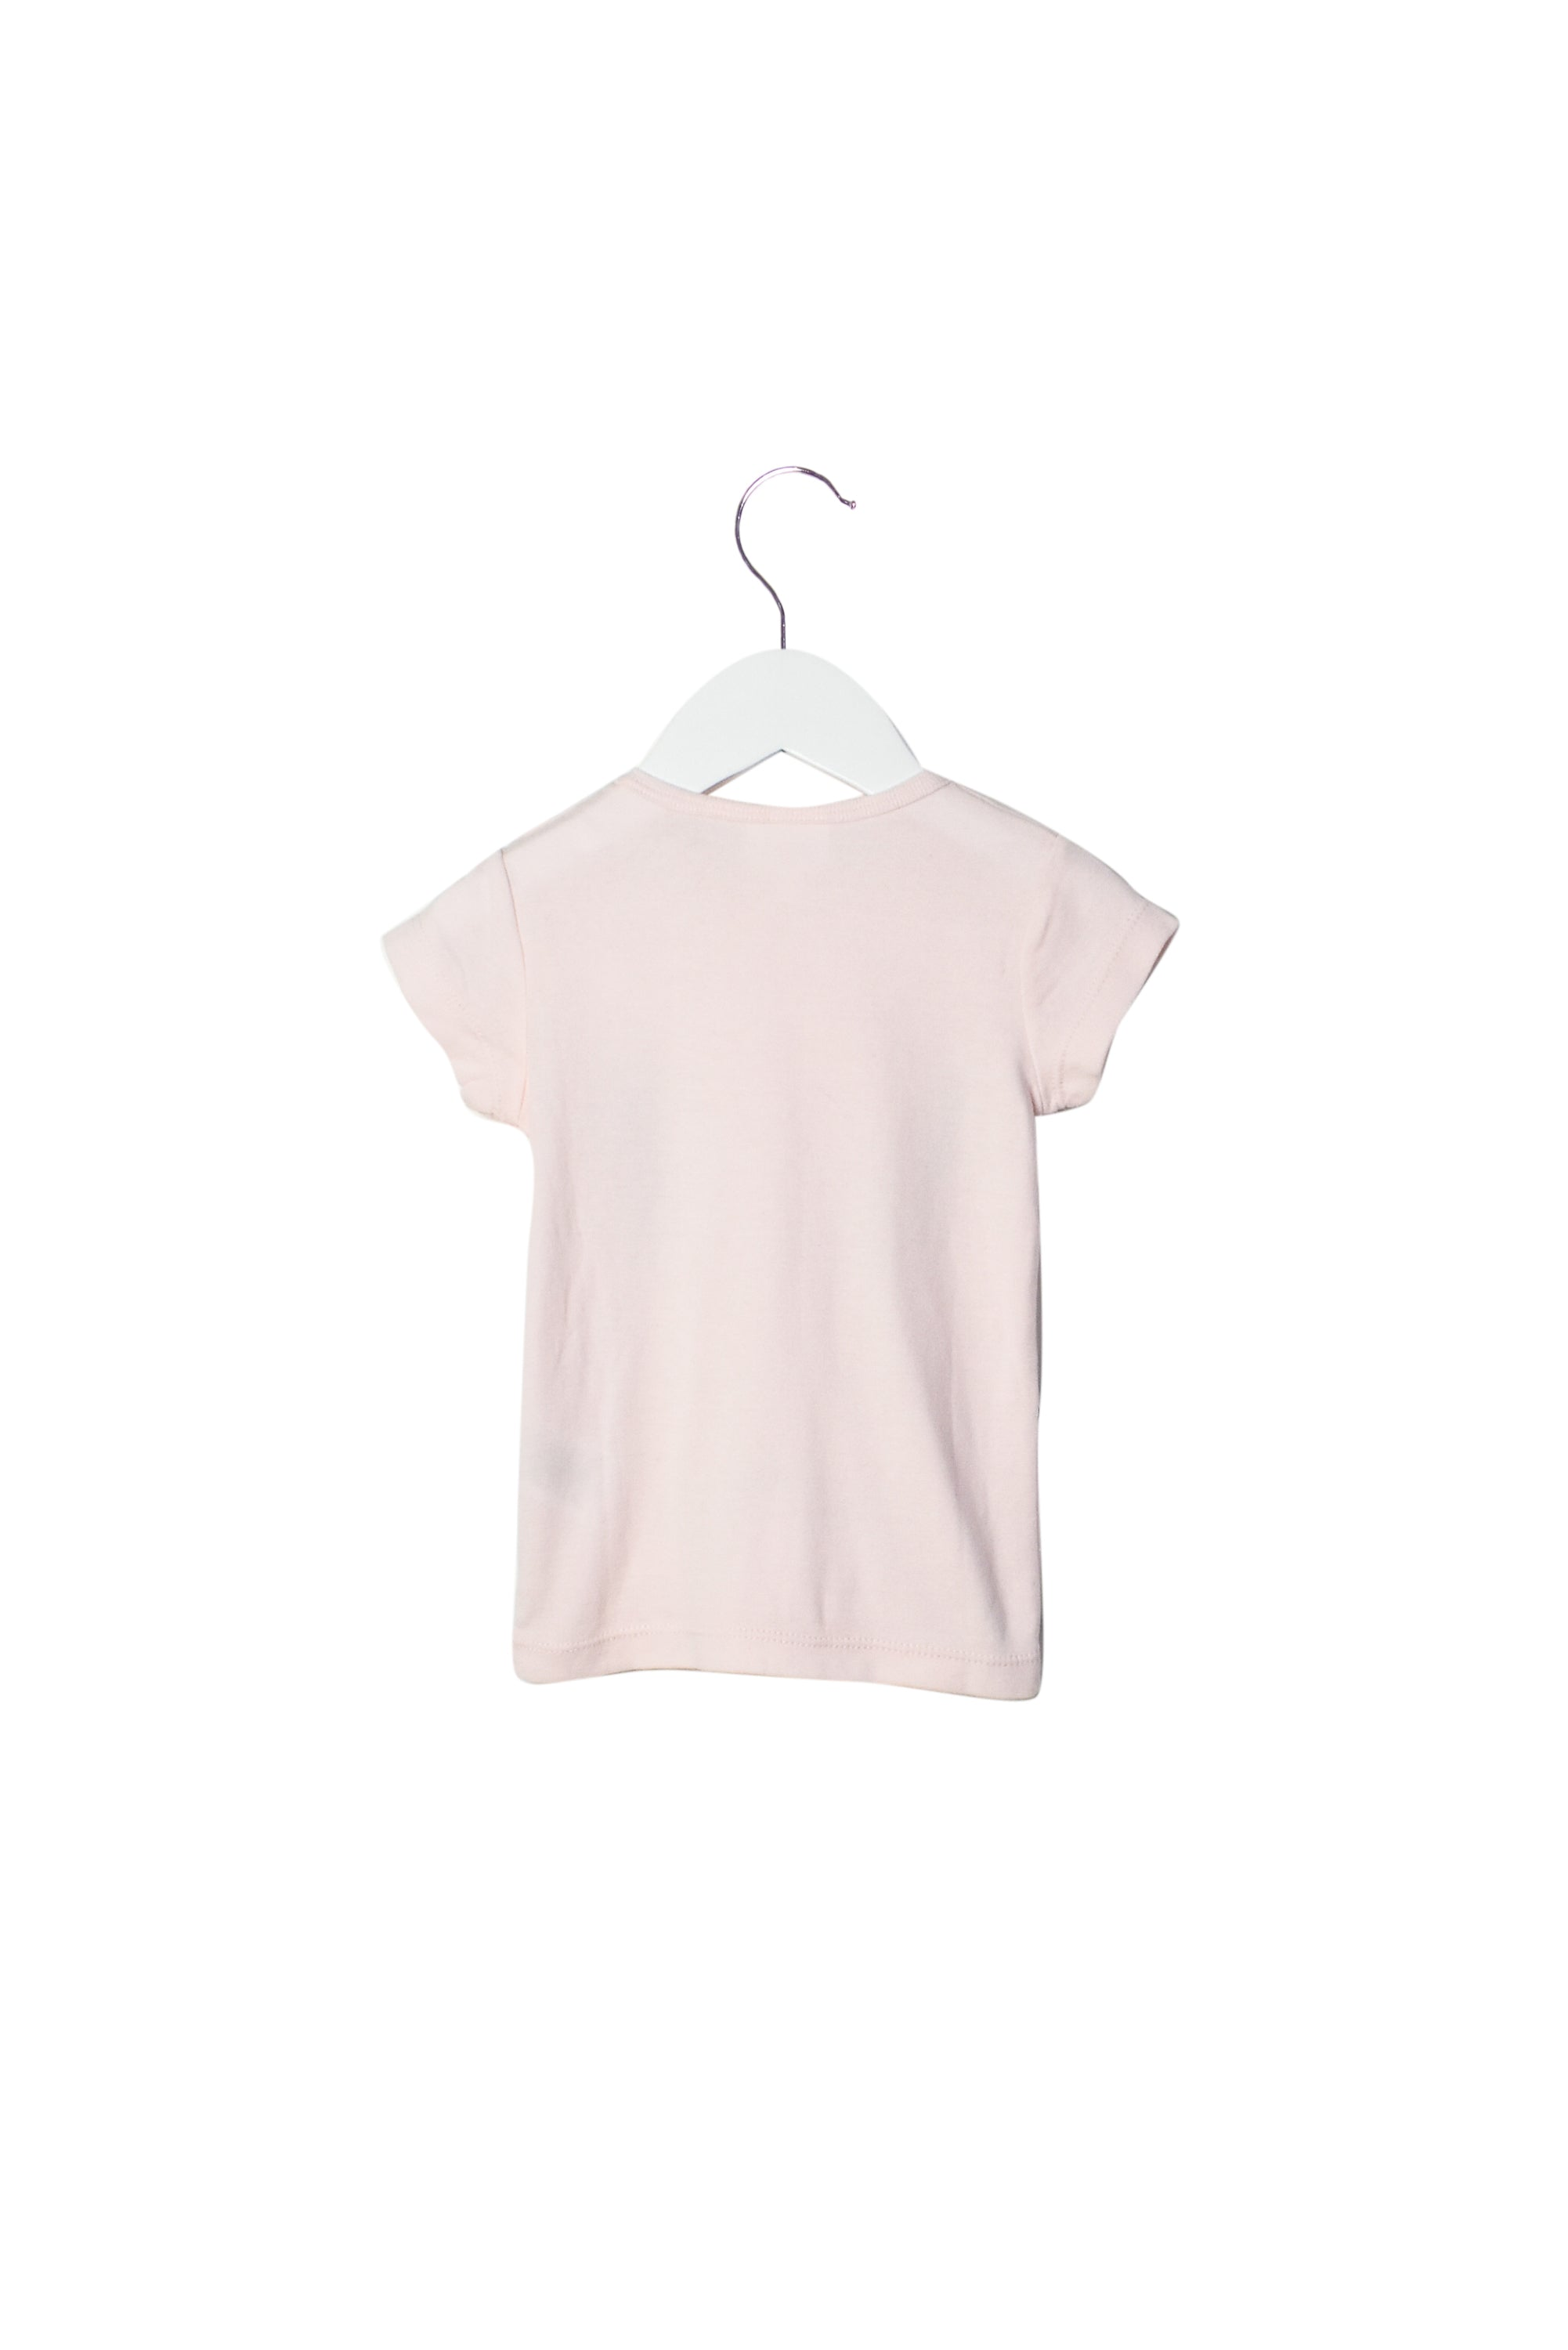 10007607 Seed Kids~T-Shirt 2T at Retykle